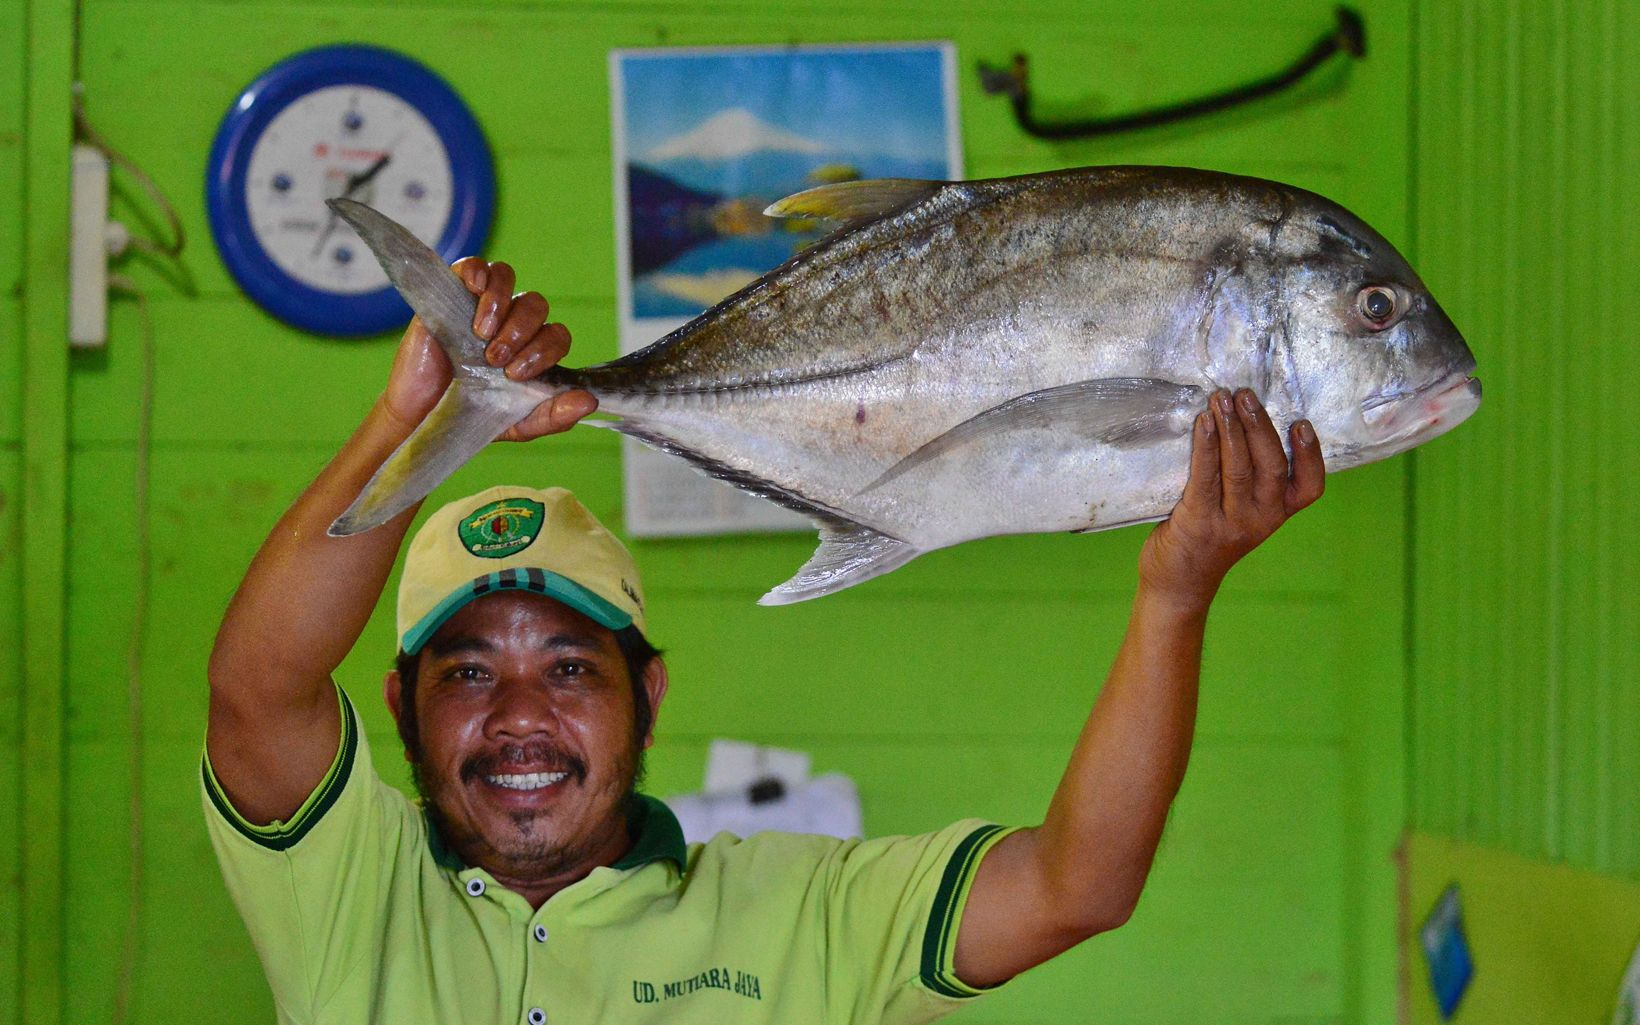 Fisherman from the coastal village of Semanting proudly displays his prize catch. Semanting is a SIGAP partner village in Borneo.